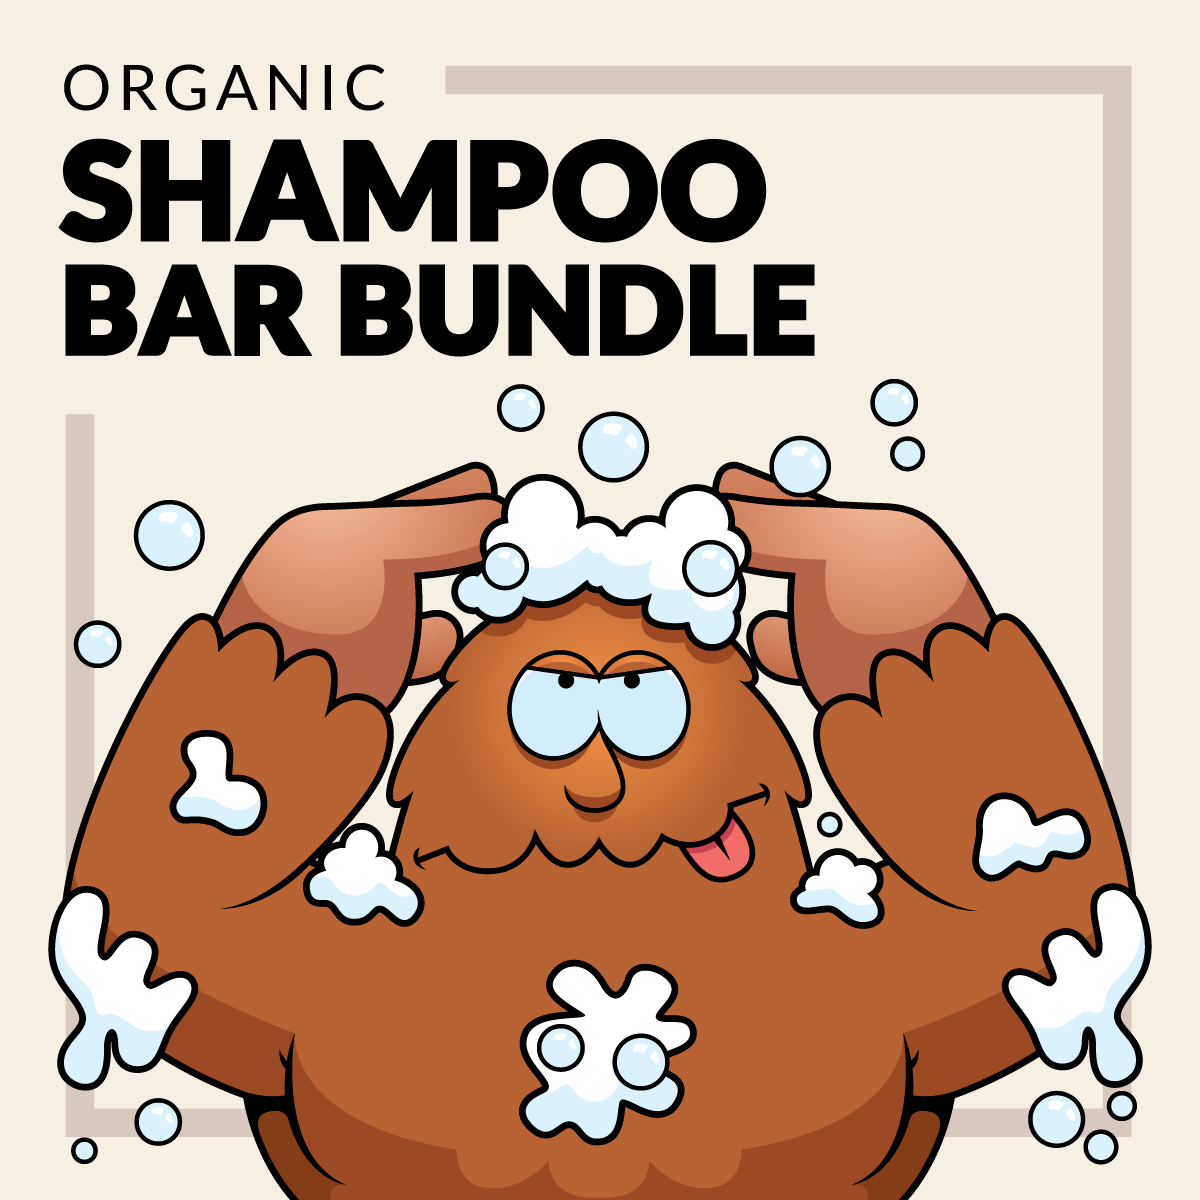 shampoo bar bundle